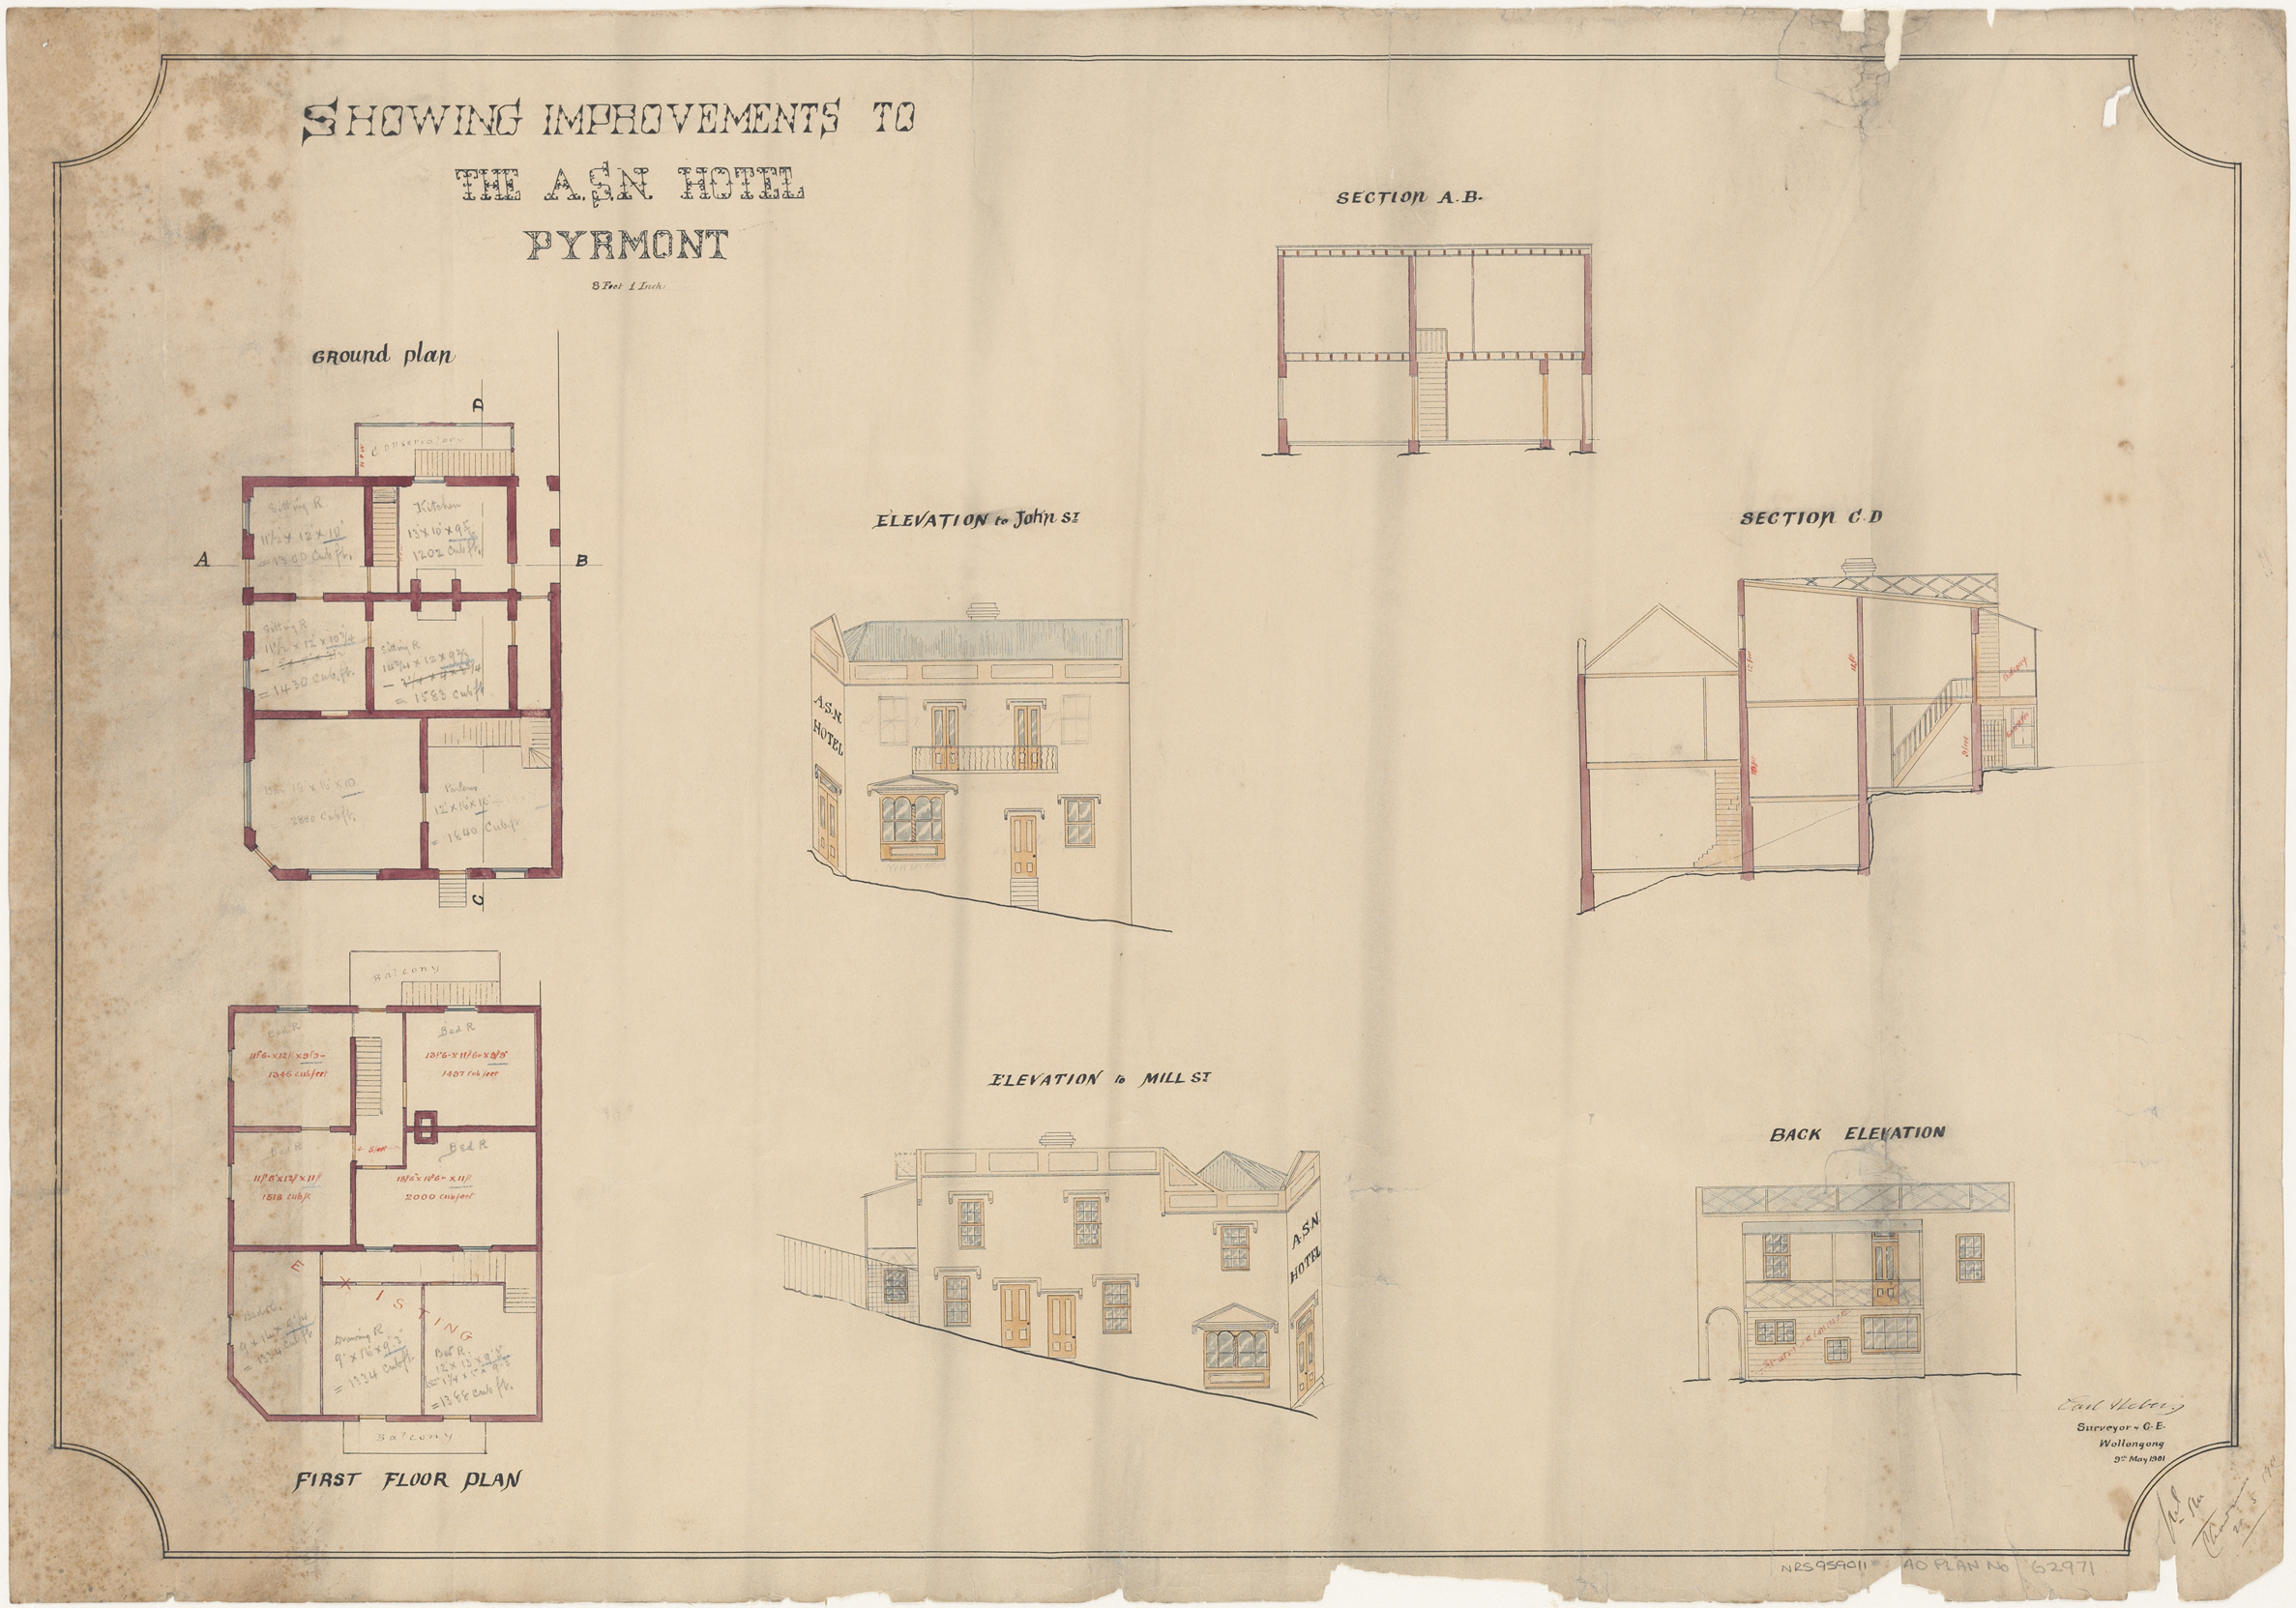 ASN Hotel, John and Mill Streets, Pyrmont, Plan of improvements, ground and first floor plans, back elevation, elevations to Mill Street and John Street and section, Architect Carl Neberg ( Surveyor ) Wollongong, Signed 20 May 1901